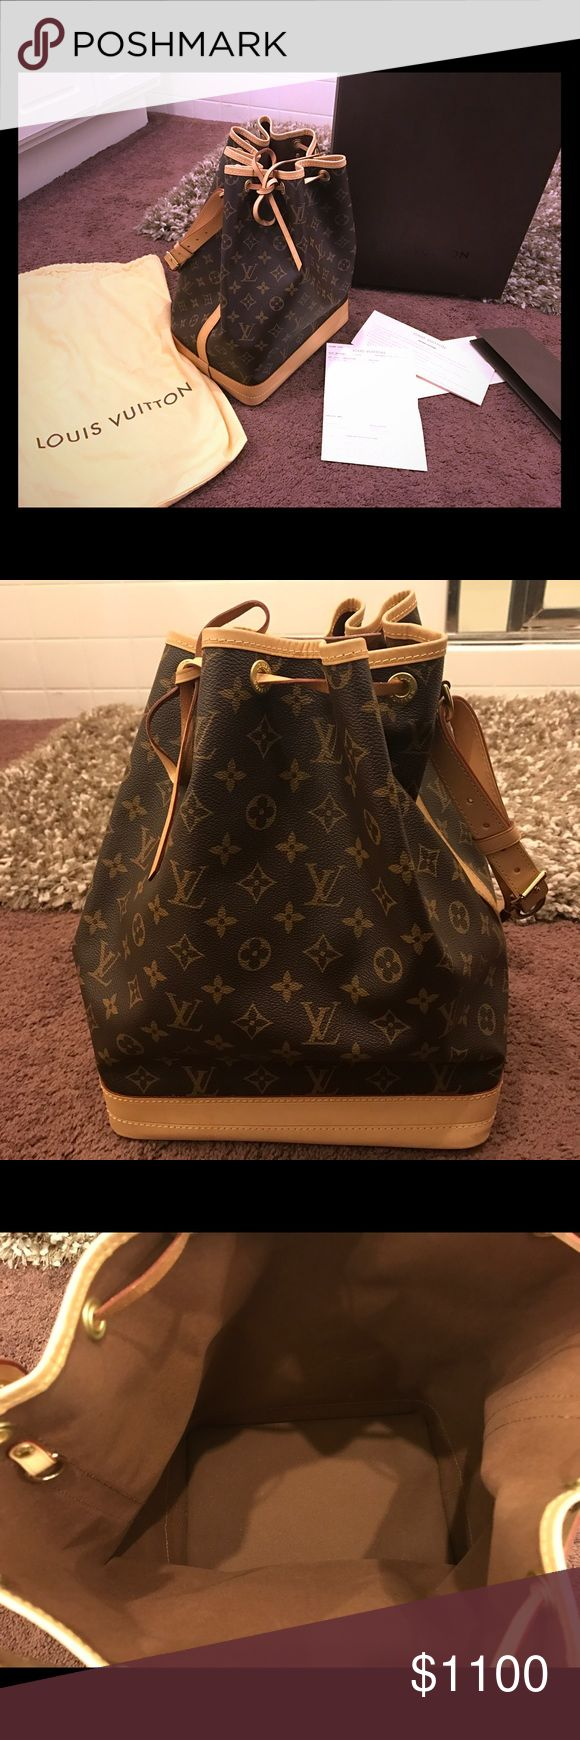 [Sold] Louis Vuitton Noe (Large) like new 100% authentic, comes with dust bag, original box and receipt. Bought from official Louis Vuitton official website. 95% new, only used it twice. Louis Vuitton Bags